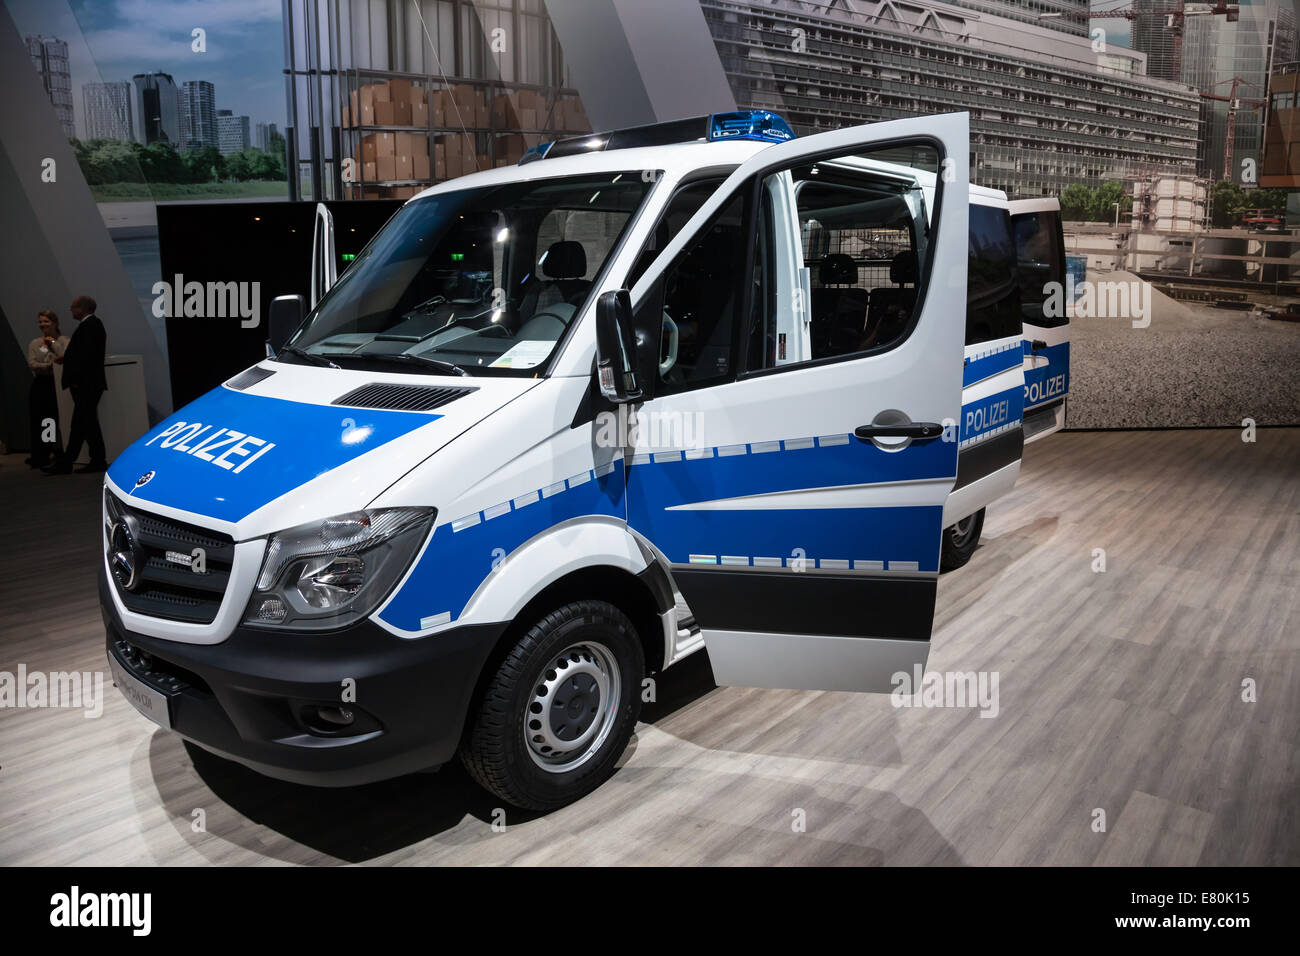 Mercedes Benz Sprinter 316 CDI Polizei van at the 65th IAA Commercial Vehicles 2014 in Hannover, Germany - Stock Image